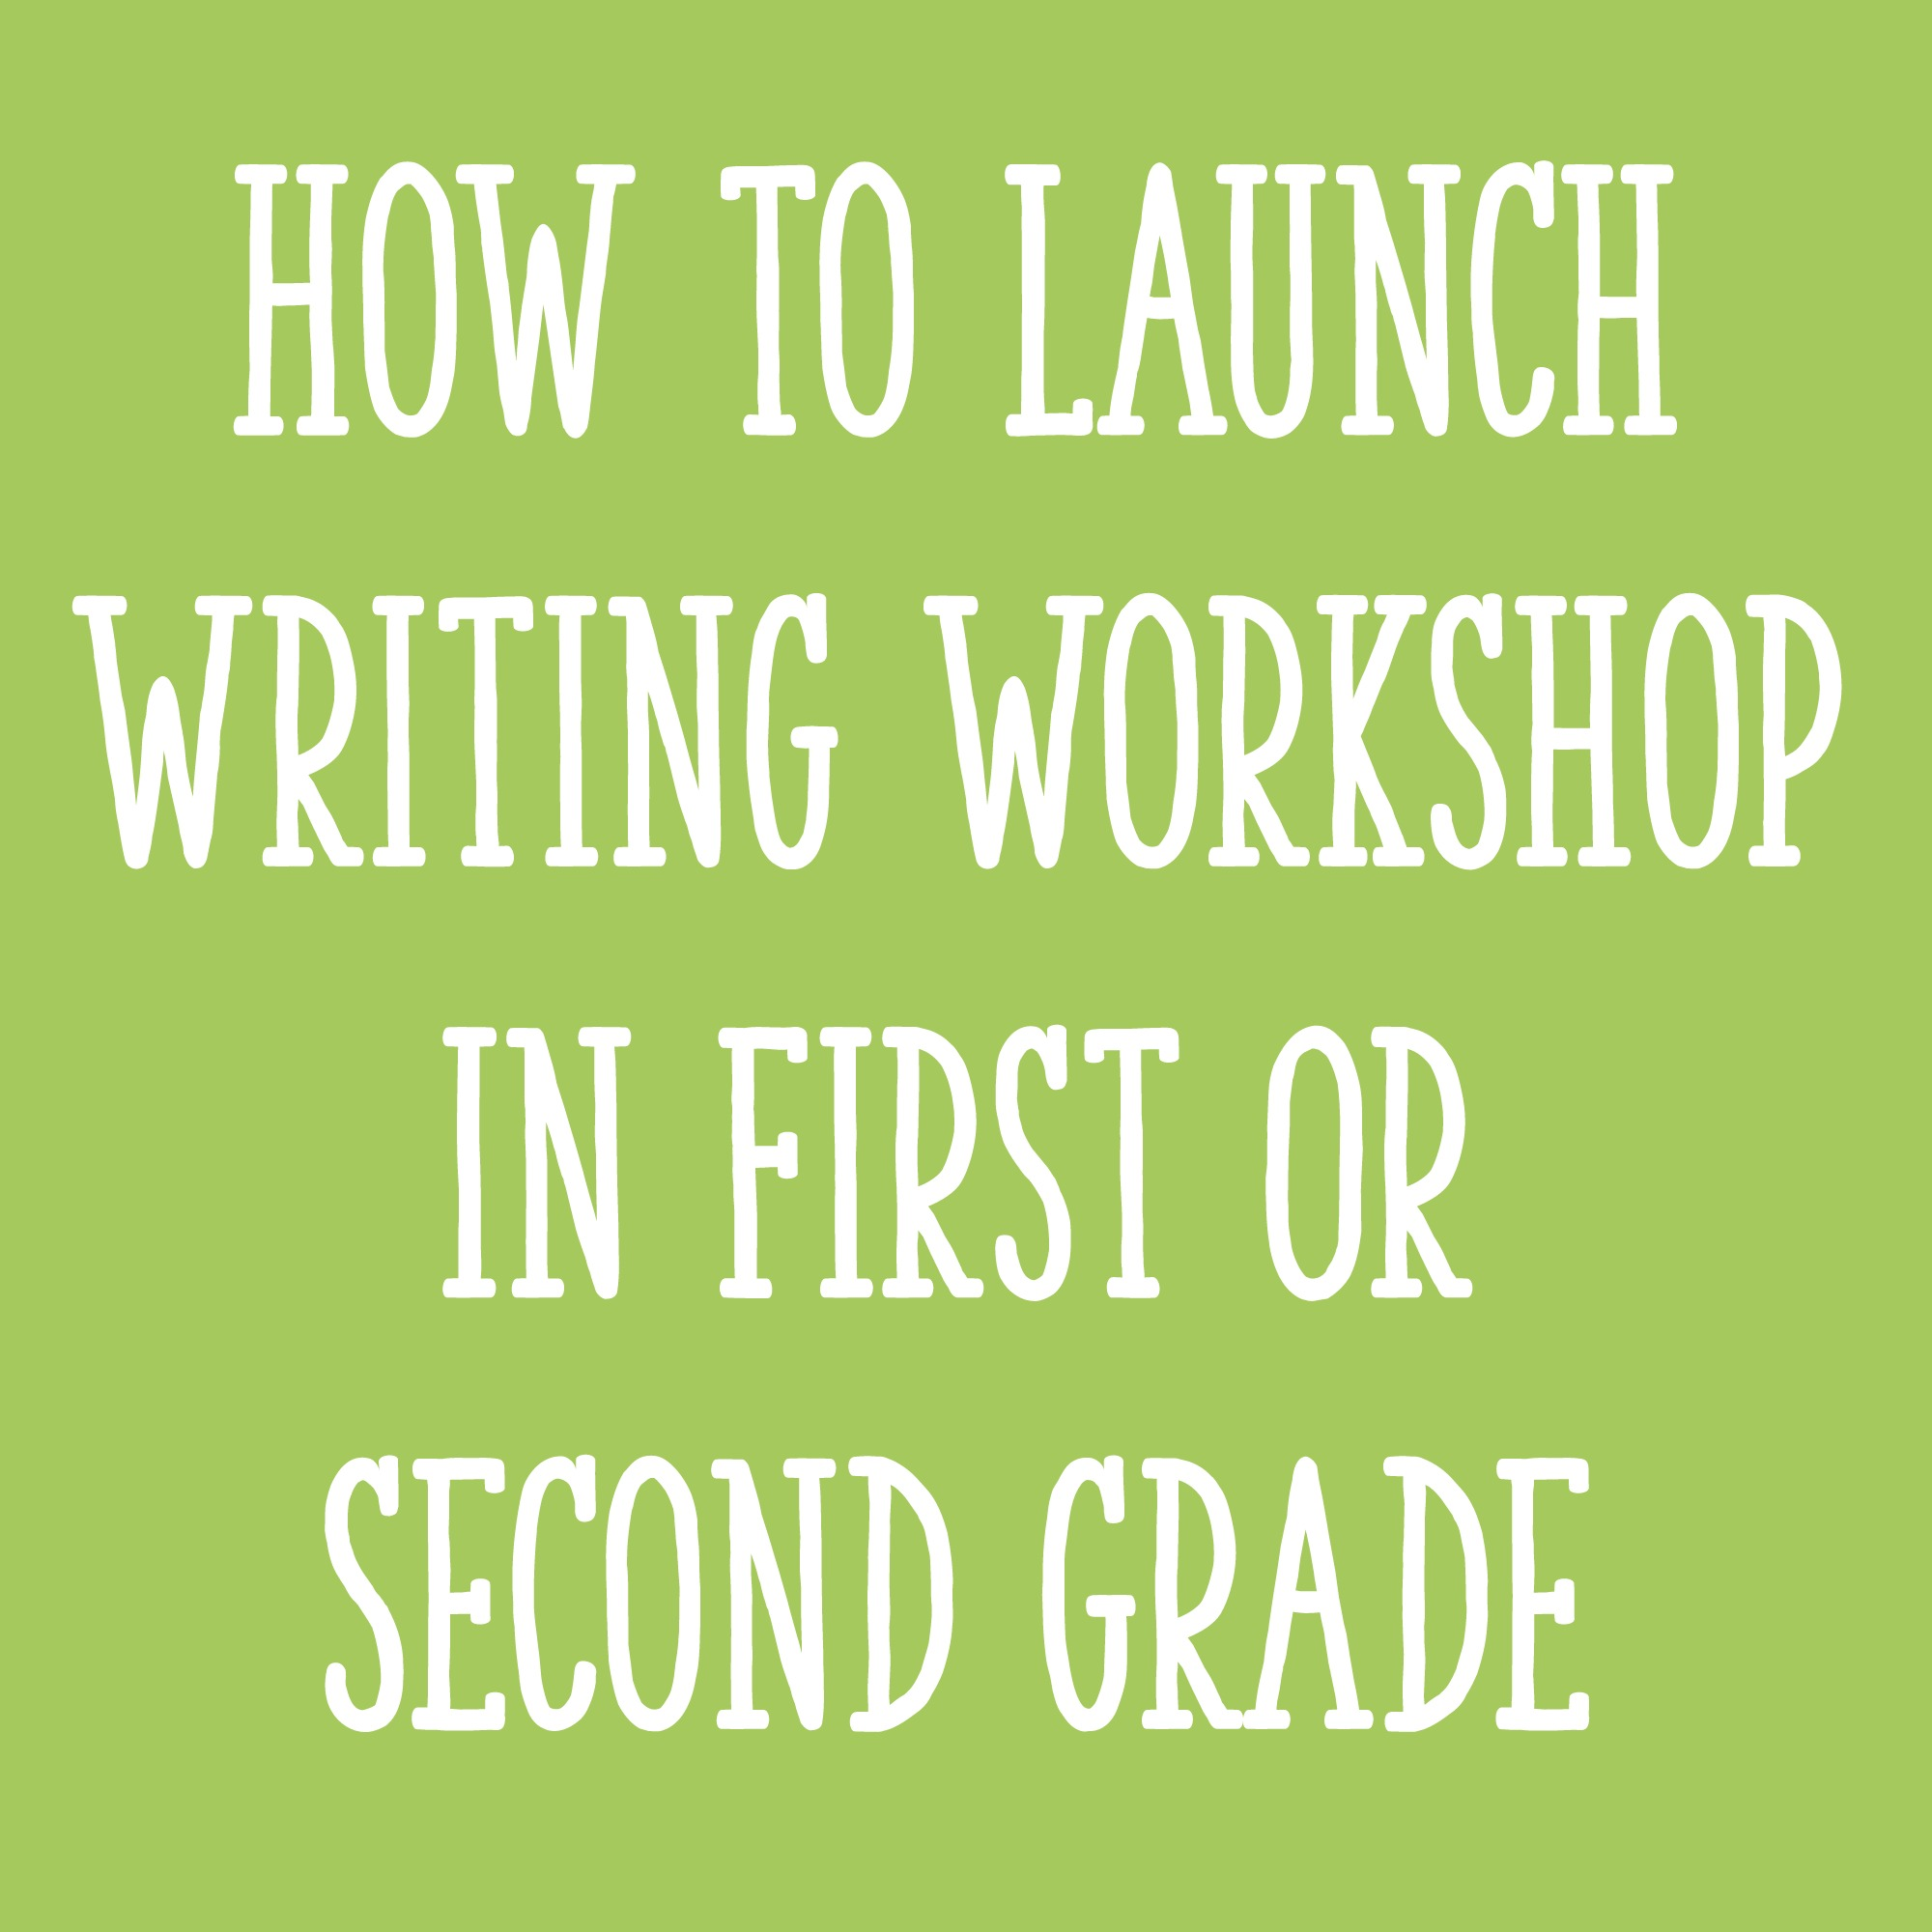 How to Launch Writing Workshop In First Or Second Grade - Learning ...